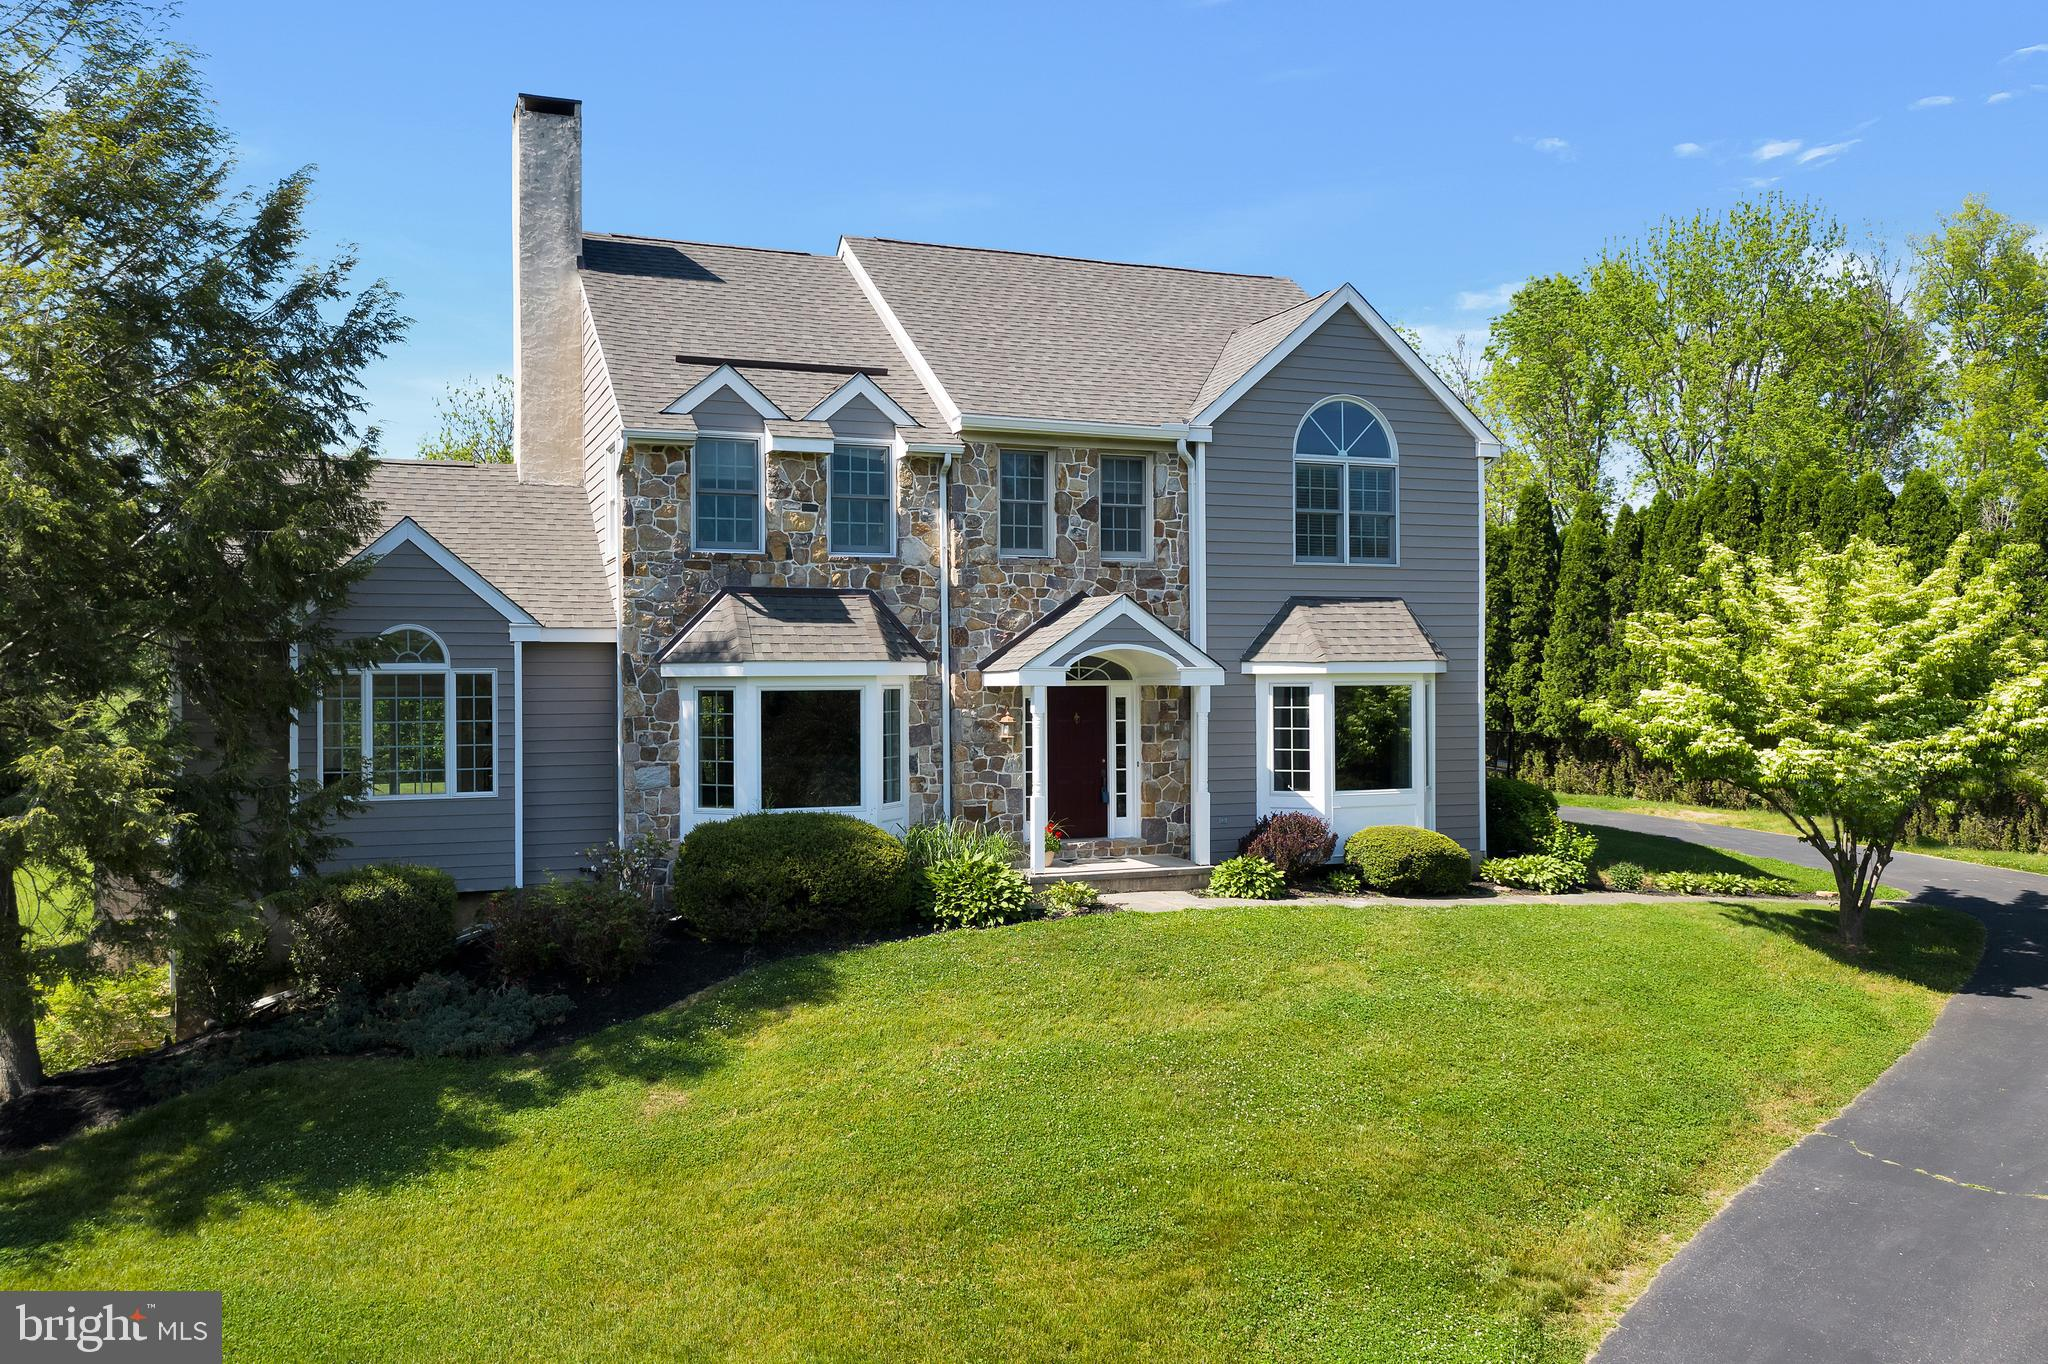 Welcome to 1243 White Wood Way, a gorgeous, well-maintained, traditional-style home that sits on a stunning, private, flat 1.3-acre lot in the Regalwood neighborhood. This home is located in the award-winning Unionville Chadds Ford school district. Upon entering the home, you will notice the grand 2 story foyer with site-finished hardwood flooring that flows into the dining room. There is a large office/ living room with beautiful french doors and new carpeting. The spacious dining room is open to both the kitchen and family room. The dining room features custom crown molding, wainscoting, and a big bay window that lets the natural light flow in the room. The sizable eat-in kitchen offers plenty of counter space for cooking and entertaining! It features beautiful Brazilian cherry hardwood floors, a big kitchen island, a walk-in pantry, and a sliding glass door that leads to the backyard! The kitchen is open to the family room that has ample natural light from the wall of windows and sliding glass doors! The family room has an impressive stone wood-burning fireplace and new carpeting! Finishing off the first floor is an oversized laundry room with cabinets, a sink,  and plenty of storage space. The powder room is off the mudroom area. The upstairs offers new carpet in the hall, 4 sizable bedrooms, and an oversized hall bath with double sinks. The spacious primary bedroom offers an ensuite spa-like bathroom and walk-in closet. The finished walk-out basement has endless possibilities! The basement features a sitting room with gas burning fireplace, a playroom, an office, a bedroom, and a full bathroom. This is the perfect space for out-of-town guests, in-laws' suite, or an au pair suite. This home is triple E rated for efficiency. Most windows, sliders, and French doors have been replaced in the last 5 years with Anderson 400 Series, low E, new construction windows, and doors. The roof was replaced in November of 2020 with 50-year architectural shingles. Most exterior 